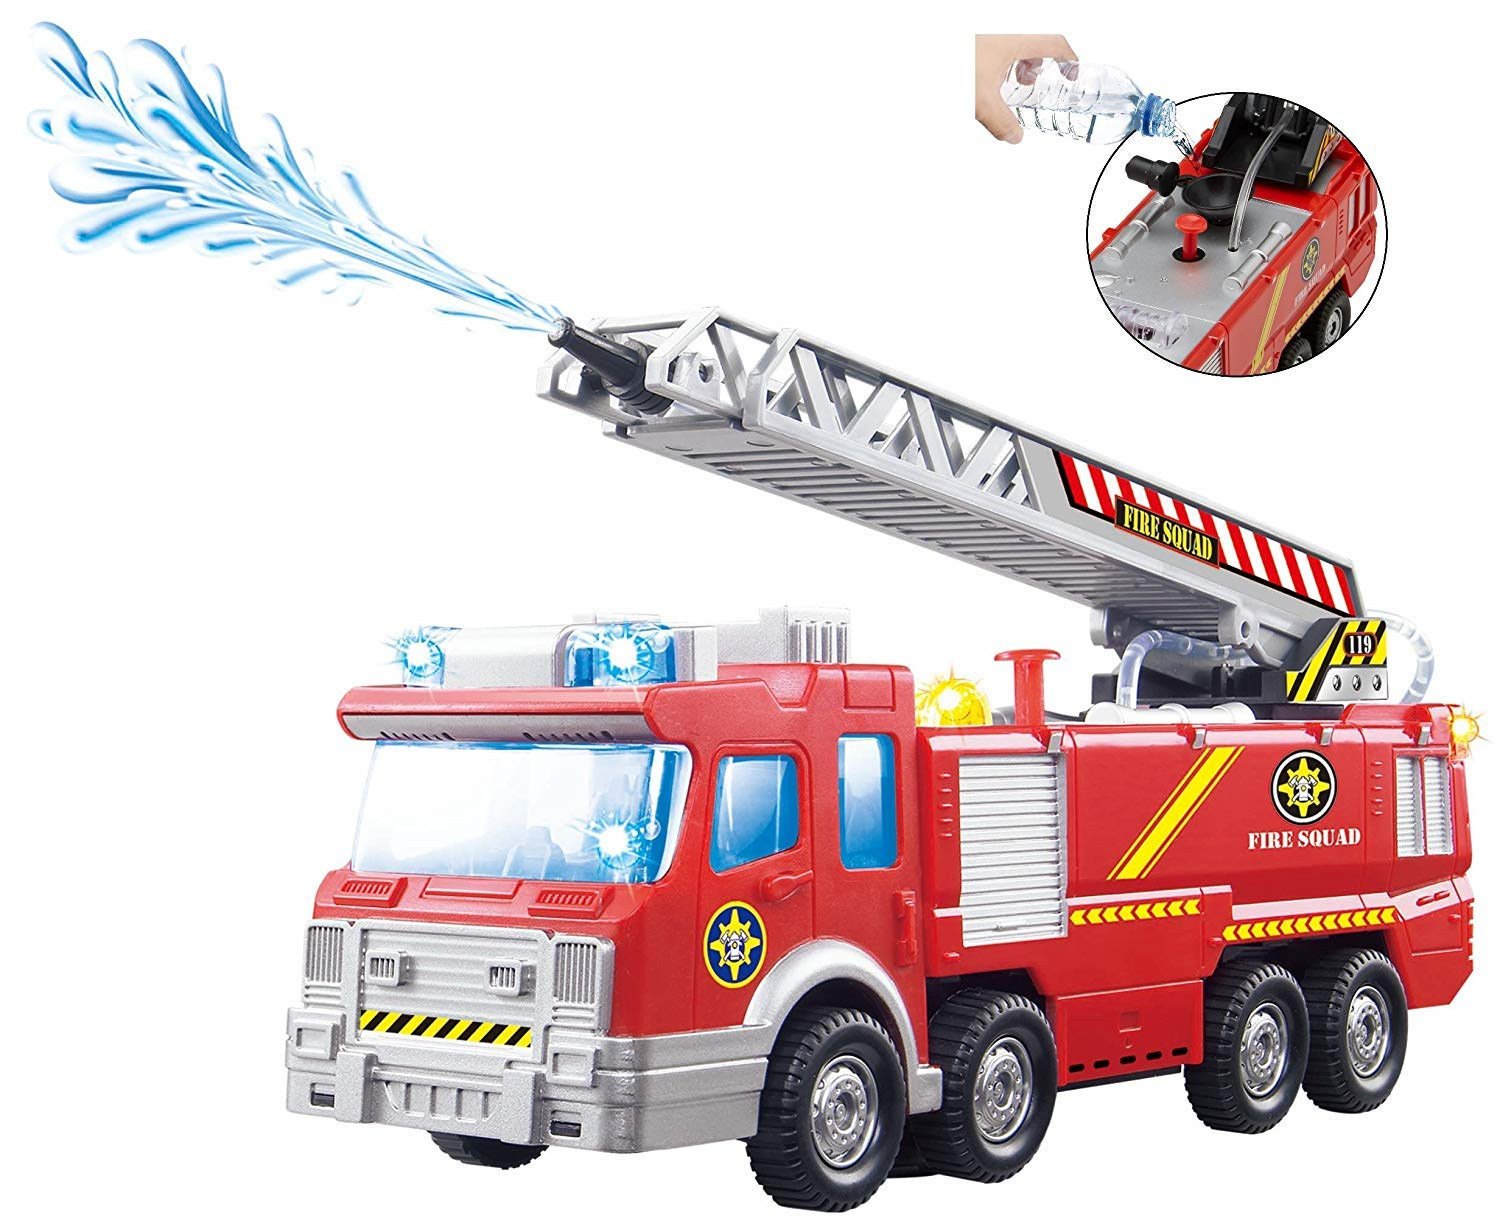 Top Race Fire Pump Engine Truck with Real Splashing Water - Extending Ladder; Flashing Lights & Sirens- Bump and Go Action Toy, Watch These Toys Turn Corner When Knocks Wall, Battery Operated, Red